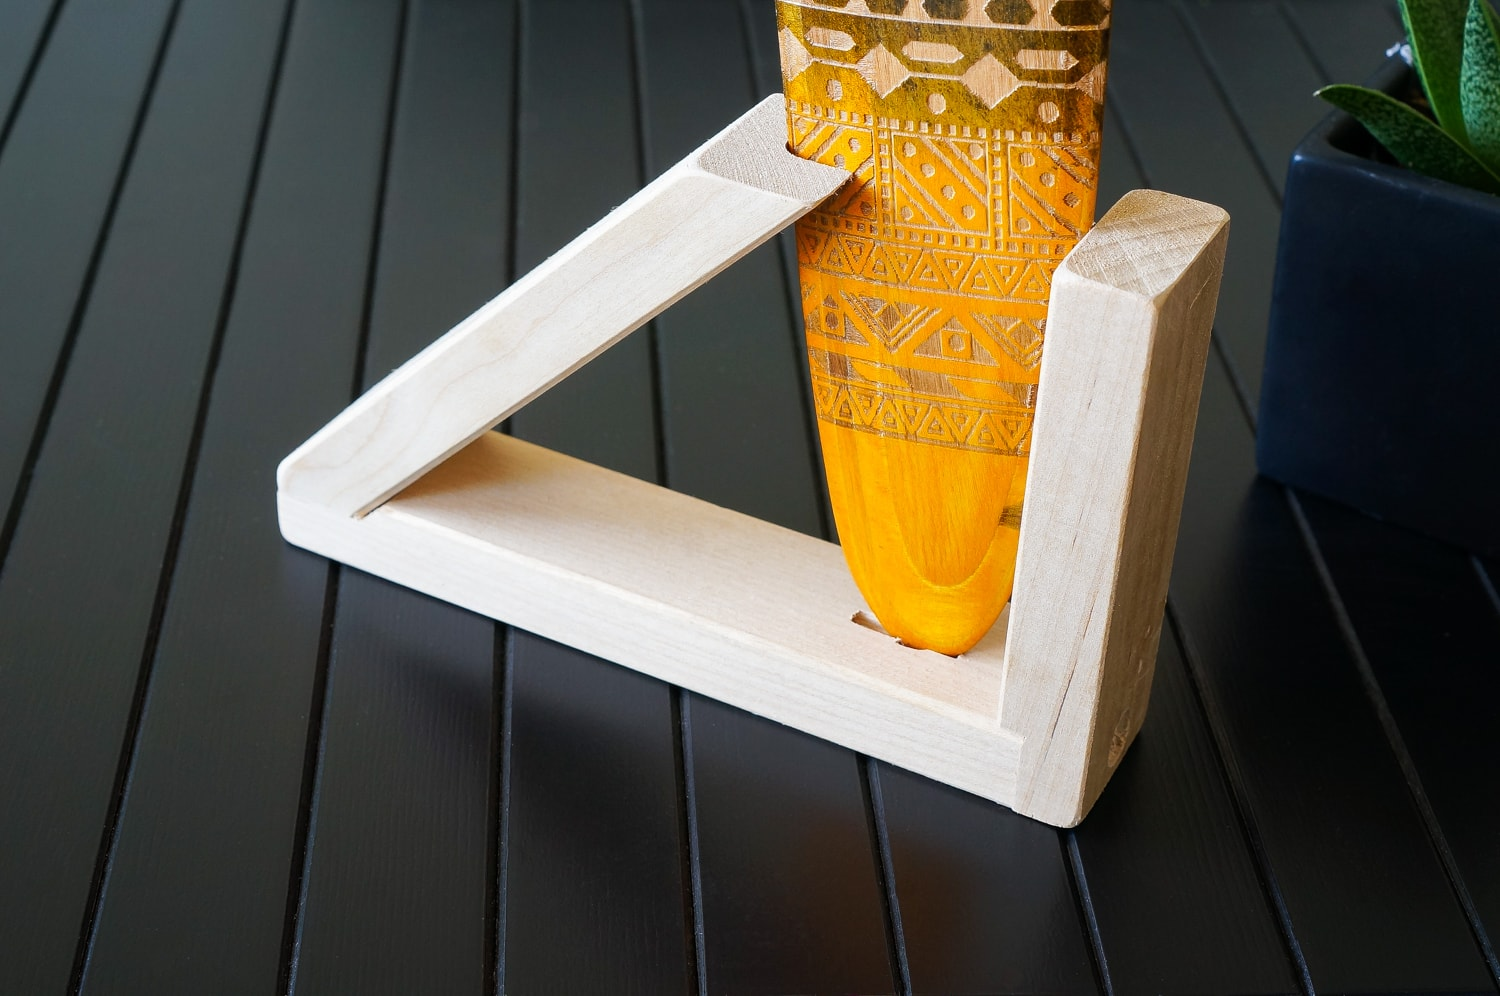 Wooden stand for boomerang. Boomerang holder.